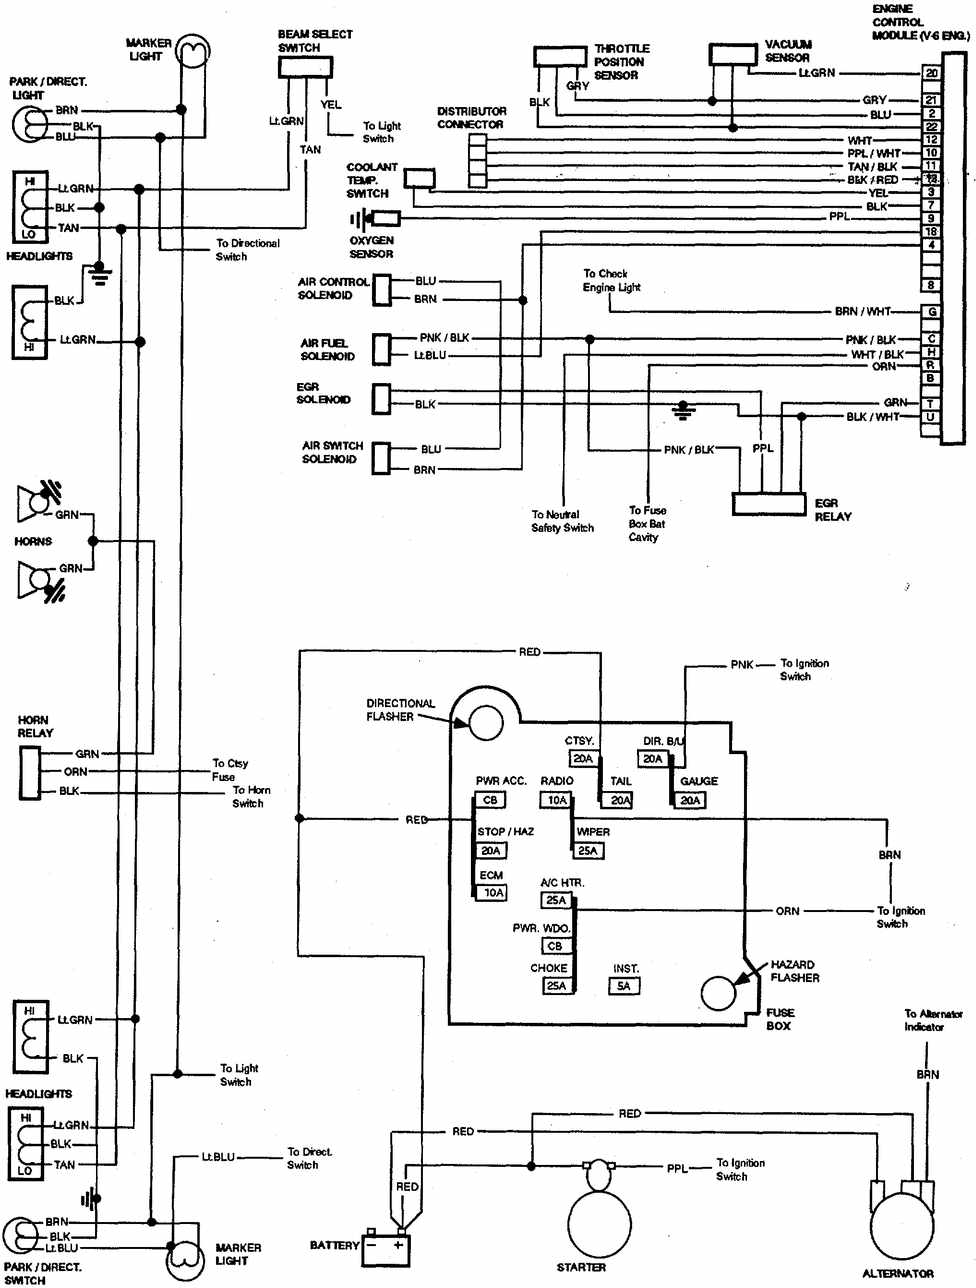 1992 Cadillac Eldorado Heater Control Diagram Wire Data Schema 1994 Fuse Box Chevrolet V8 Trucks 1981 1987 Electrical Wiring 1995 2002